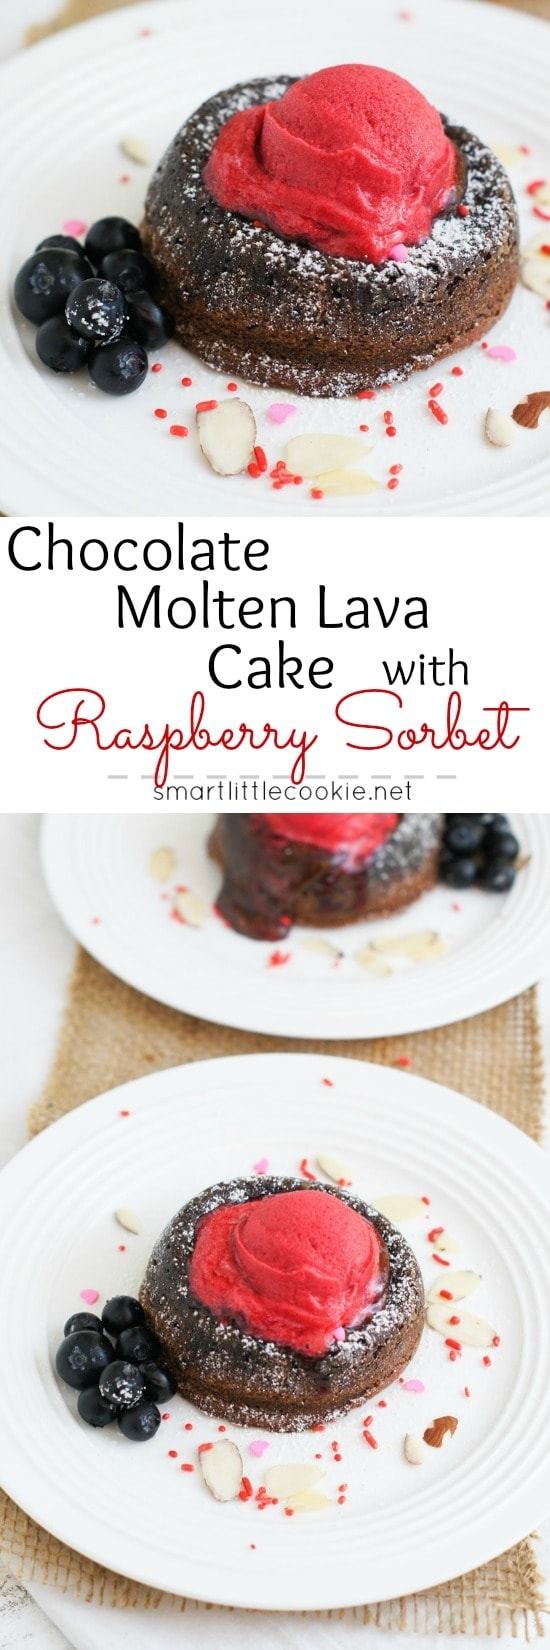 Rich, dense and fudgy, this chocolate molten lava cake topped with a sweet and refreshing raspberry sorbet is the perfect dessert to enjoy any day.